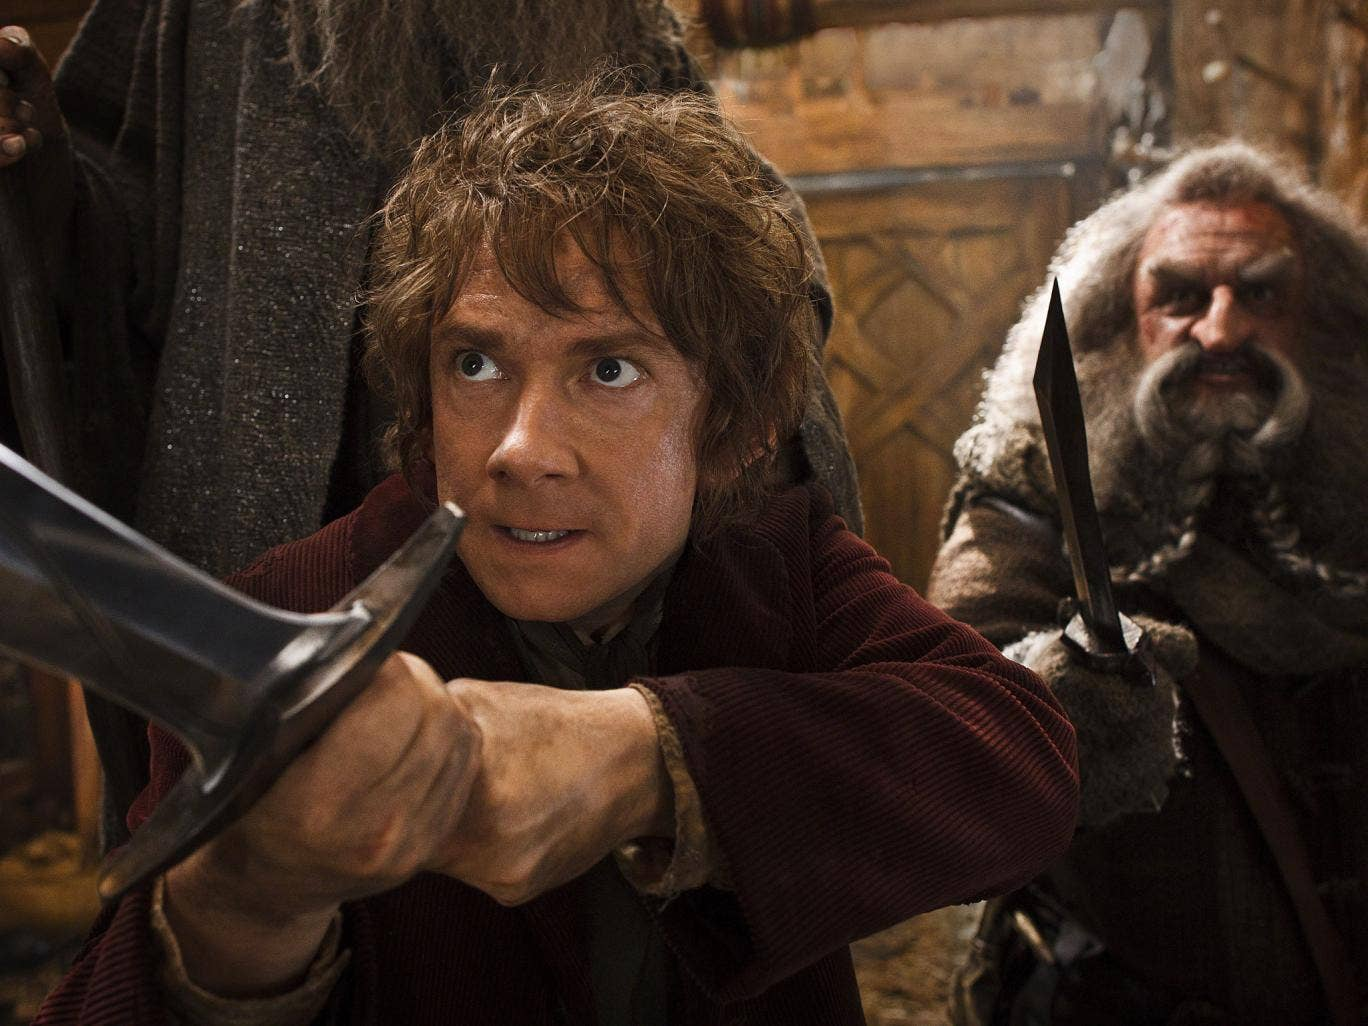 According to studio estimates Sunday, Peter Jackson's 'Hobbit' sequel took in $31.5 million in its second weekend of release. That topped Will Ferrell's 'Anchorman' sequel, which nevertheless opened strongly in second place